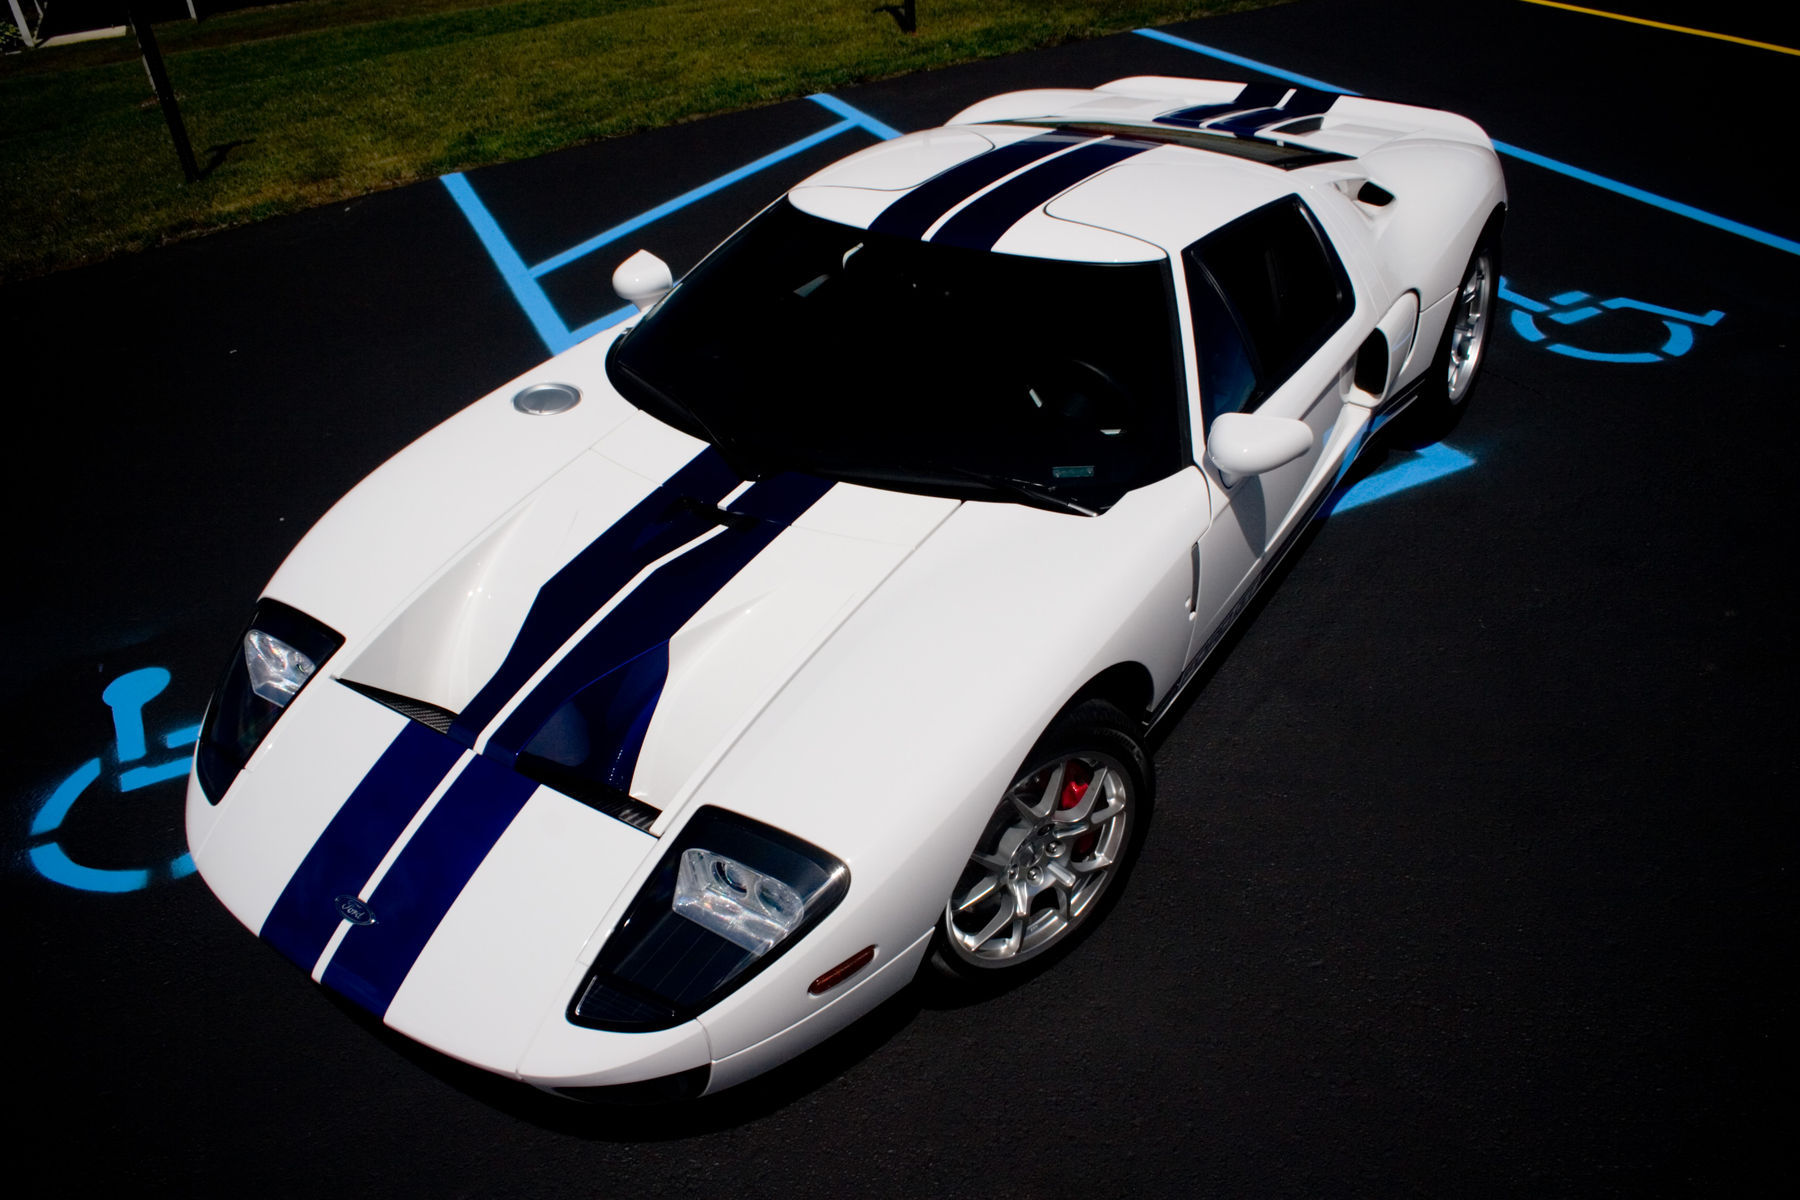 2005 Ford GT | 2005 Ford GT